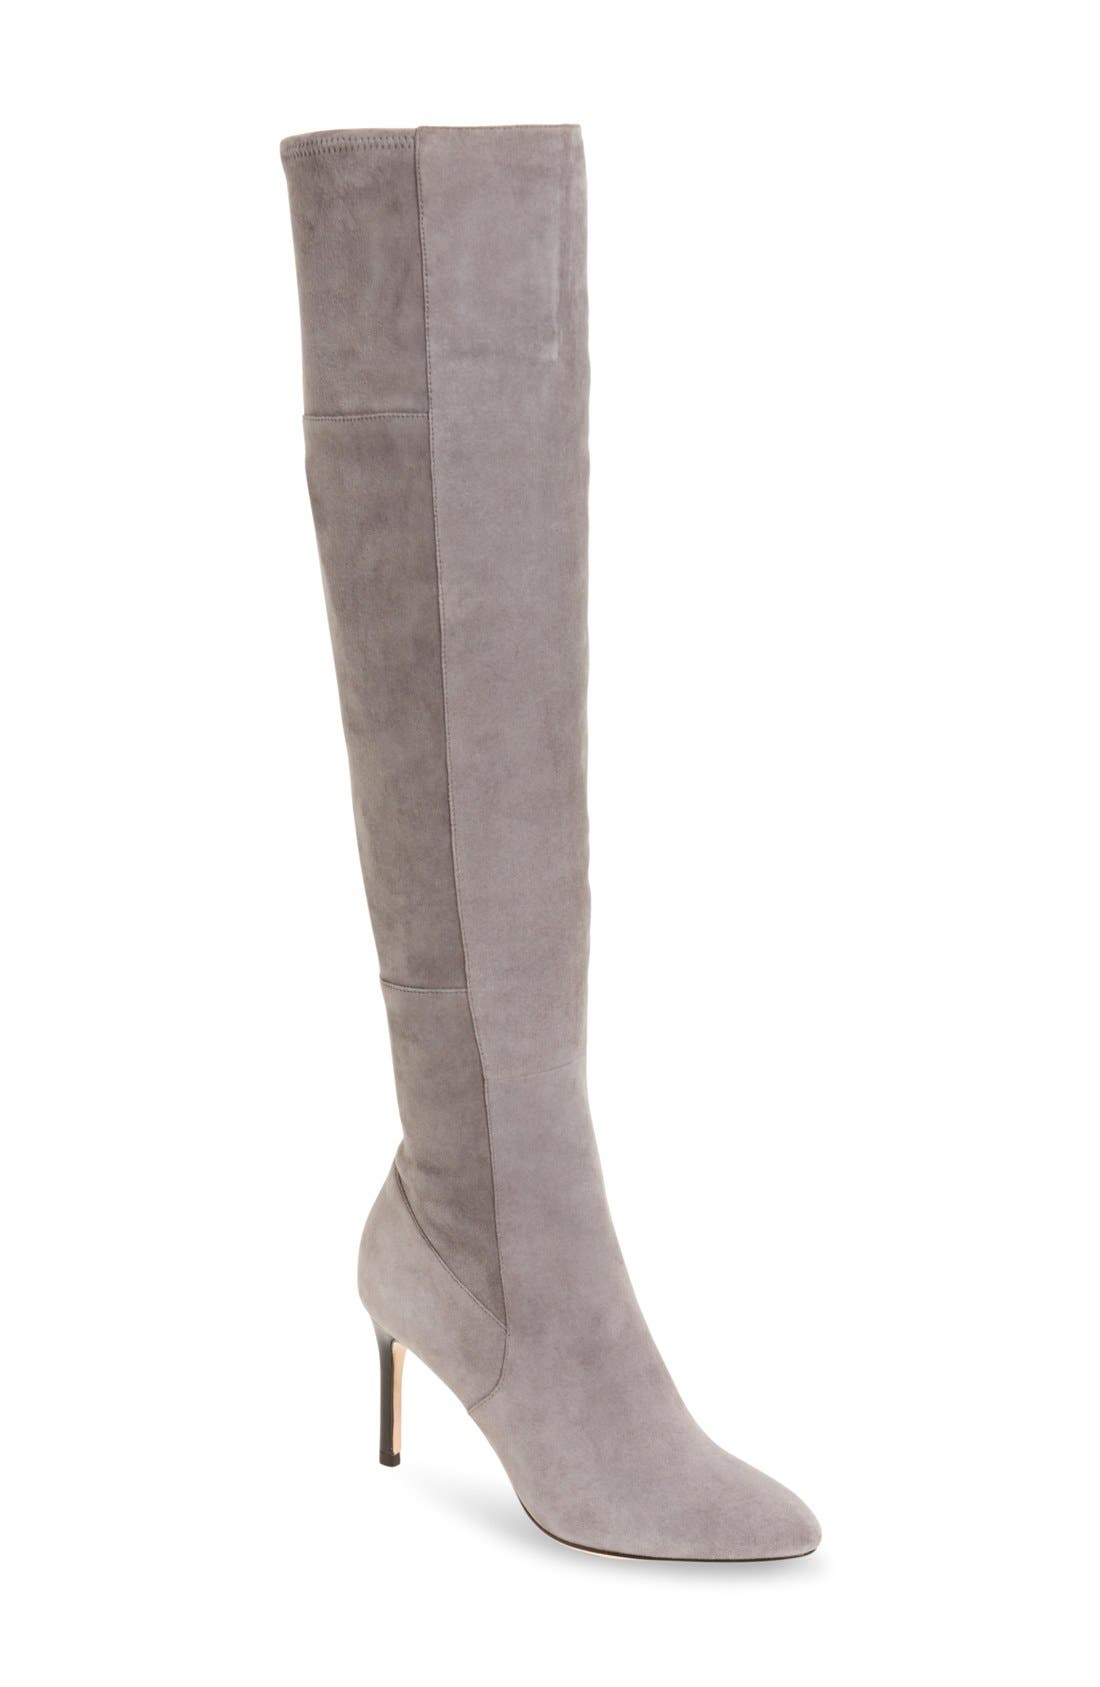 Alternate Image 1 Selected - Cole Haan 'Marina' Over the Knee Boot (Women)